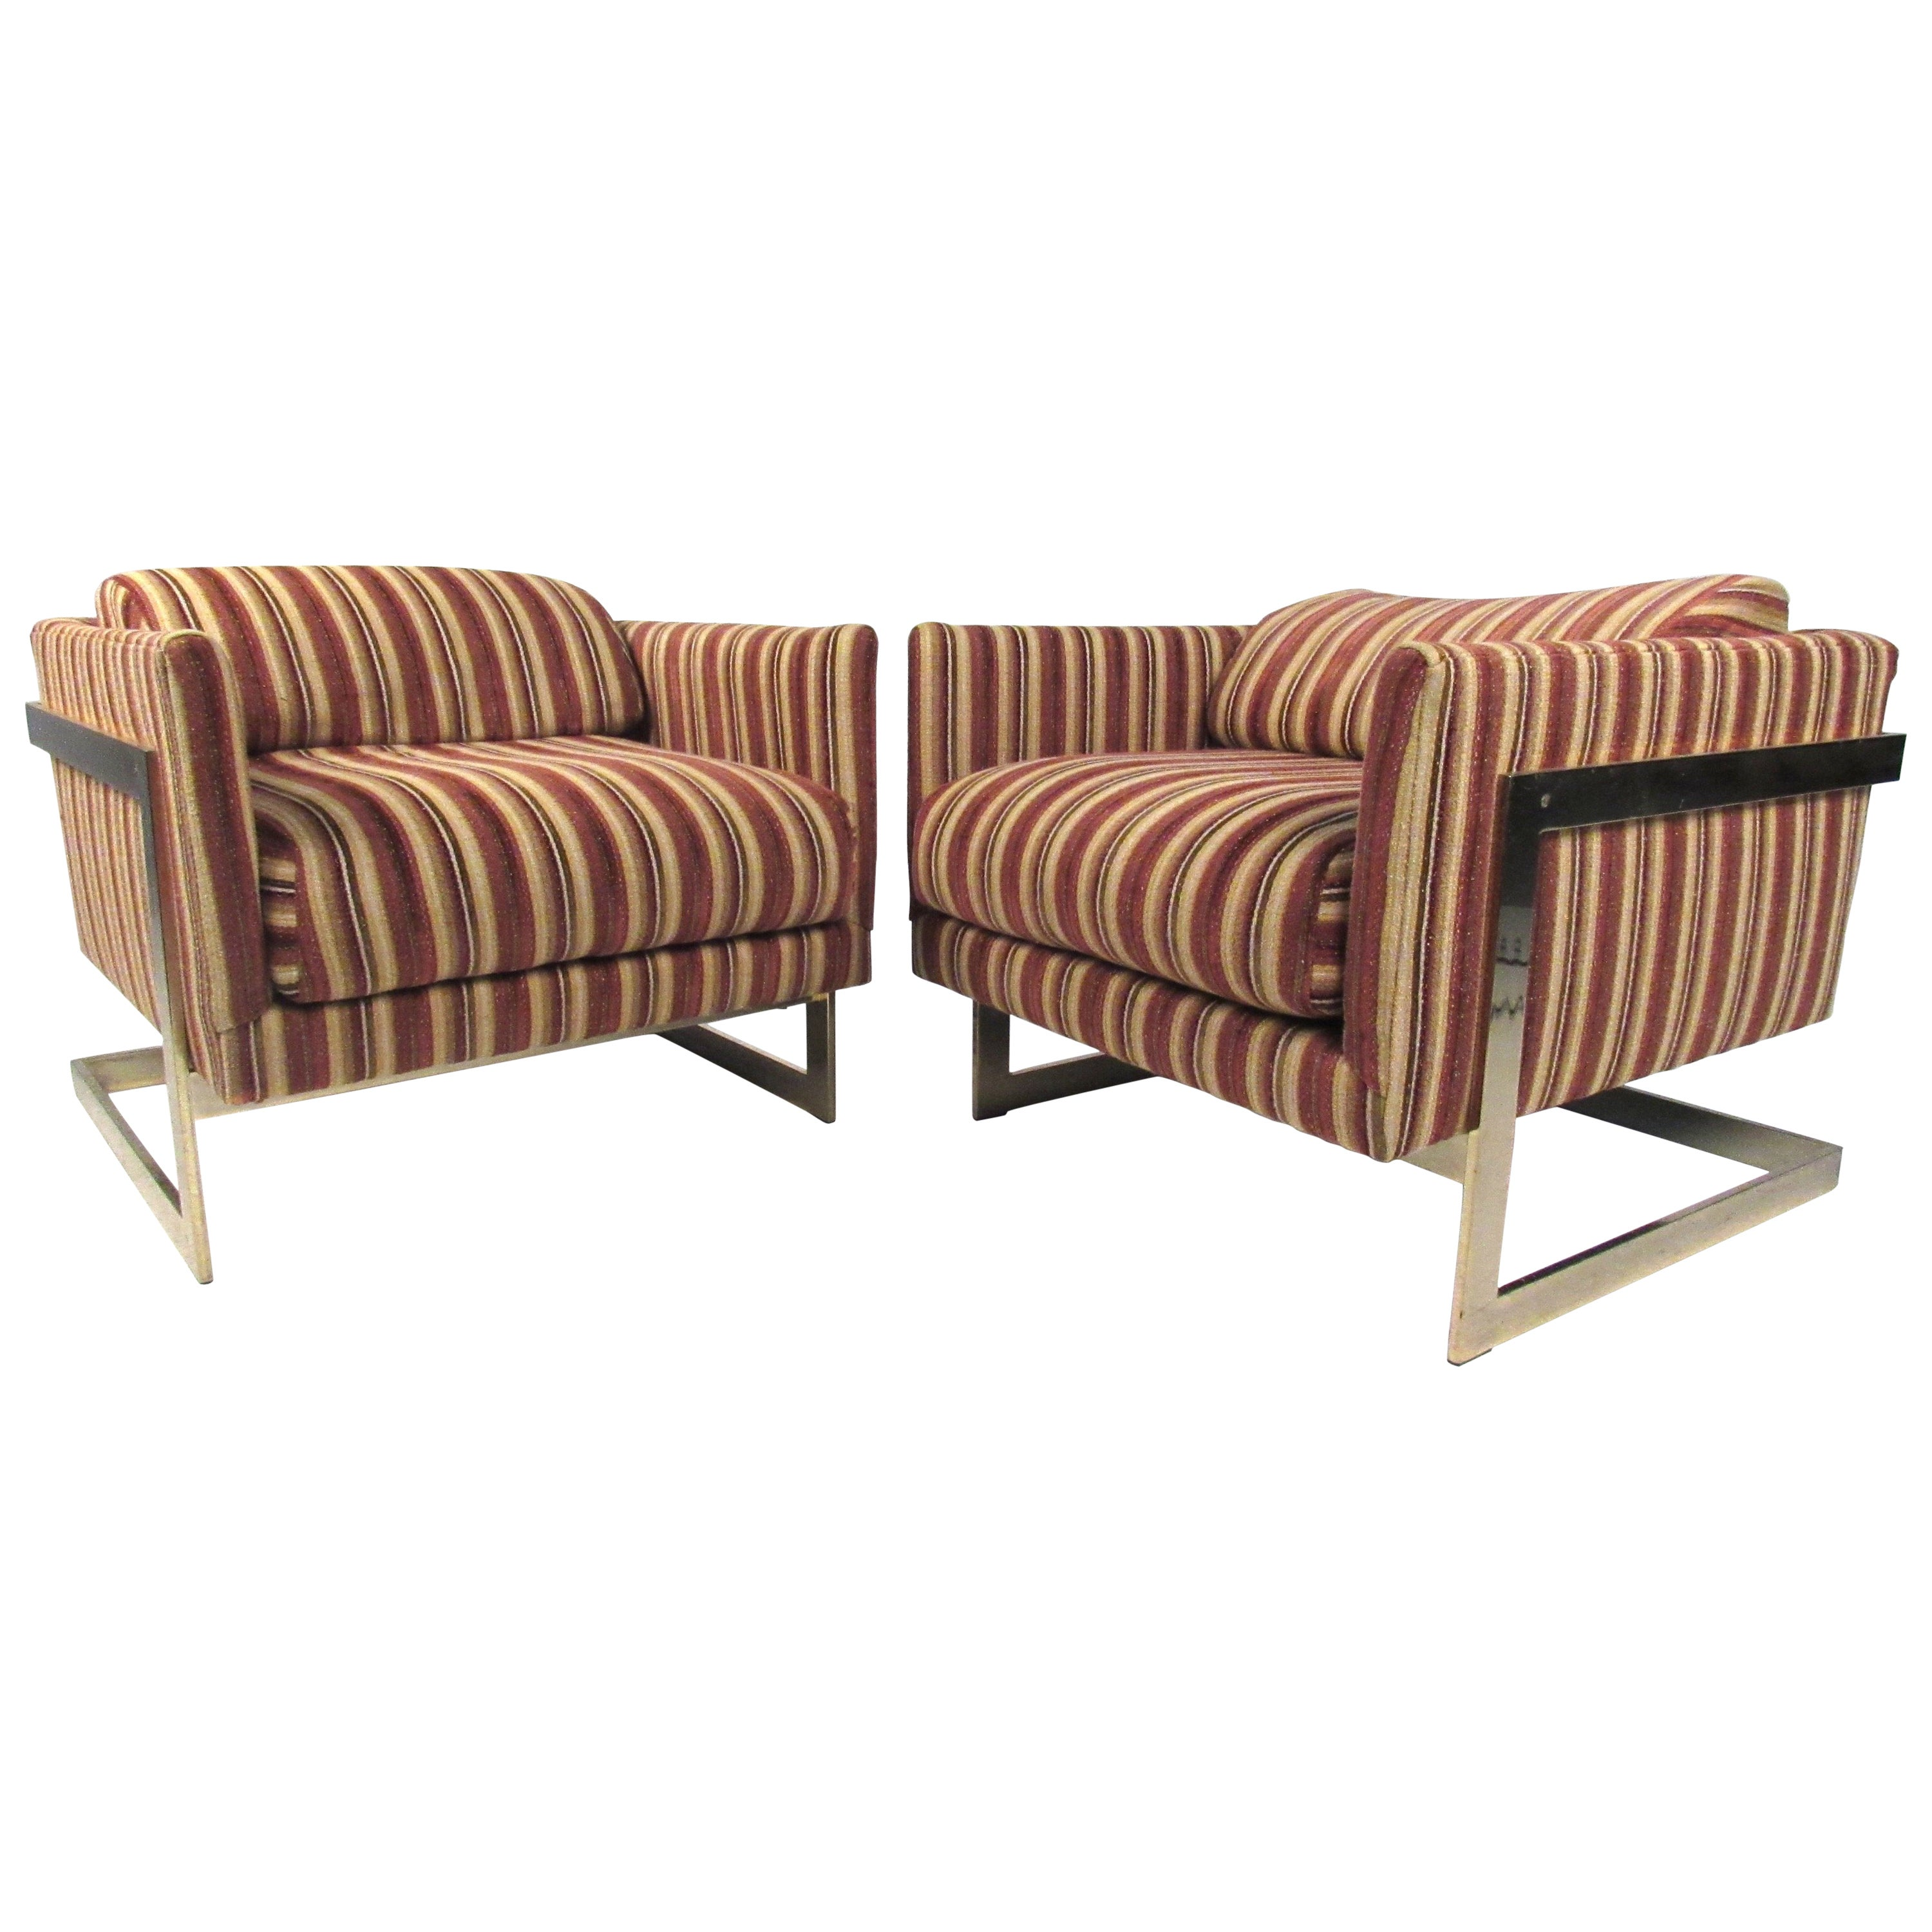 """Vintage """"Cube"""" Lounge Chairs by Milo Baughman for Thayer Coggin"""